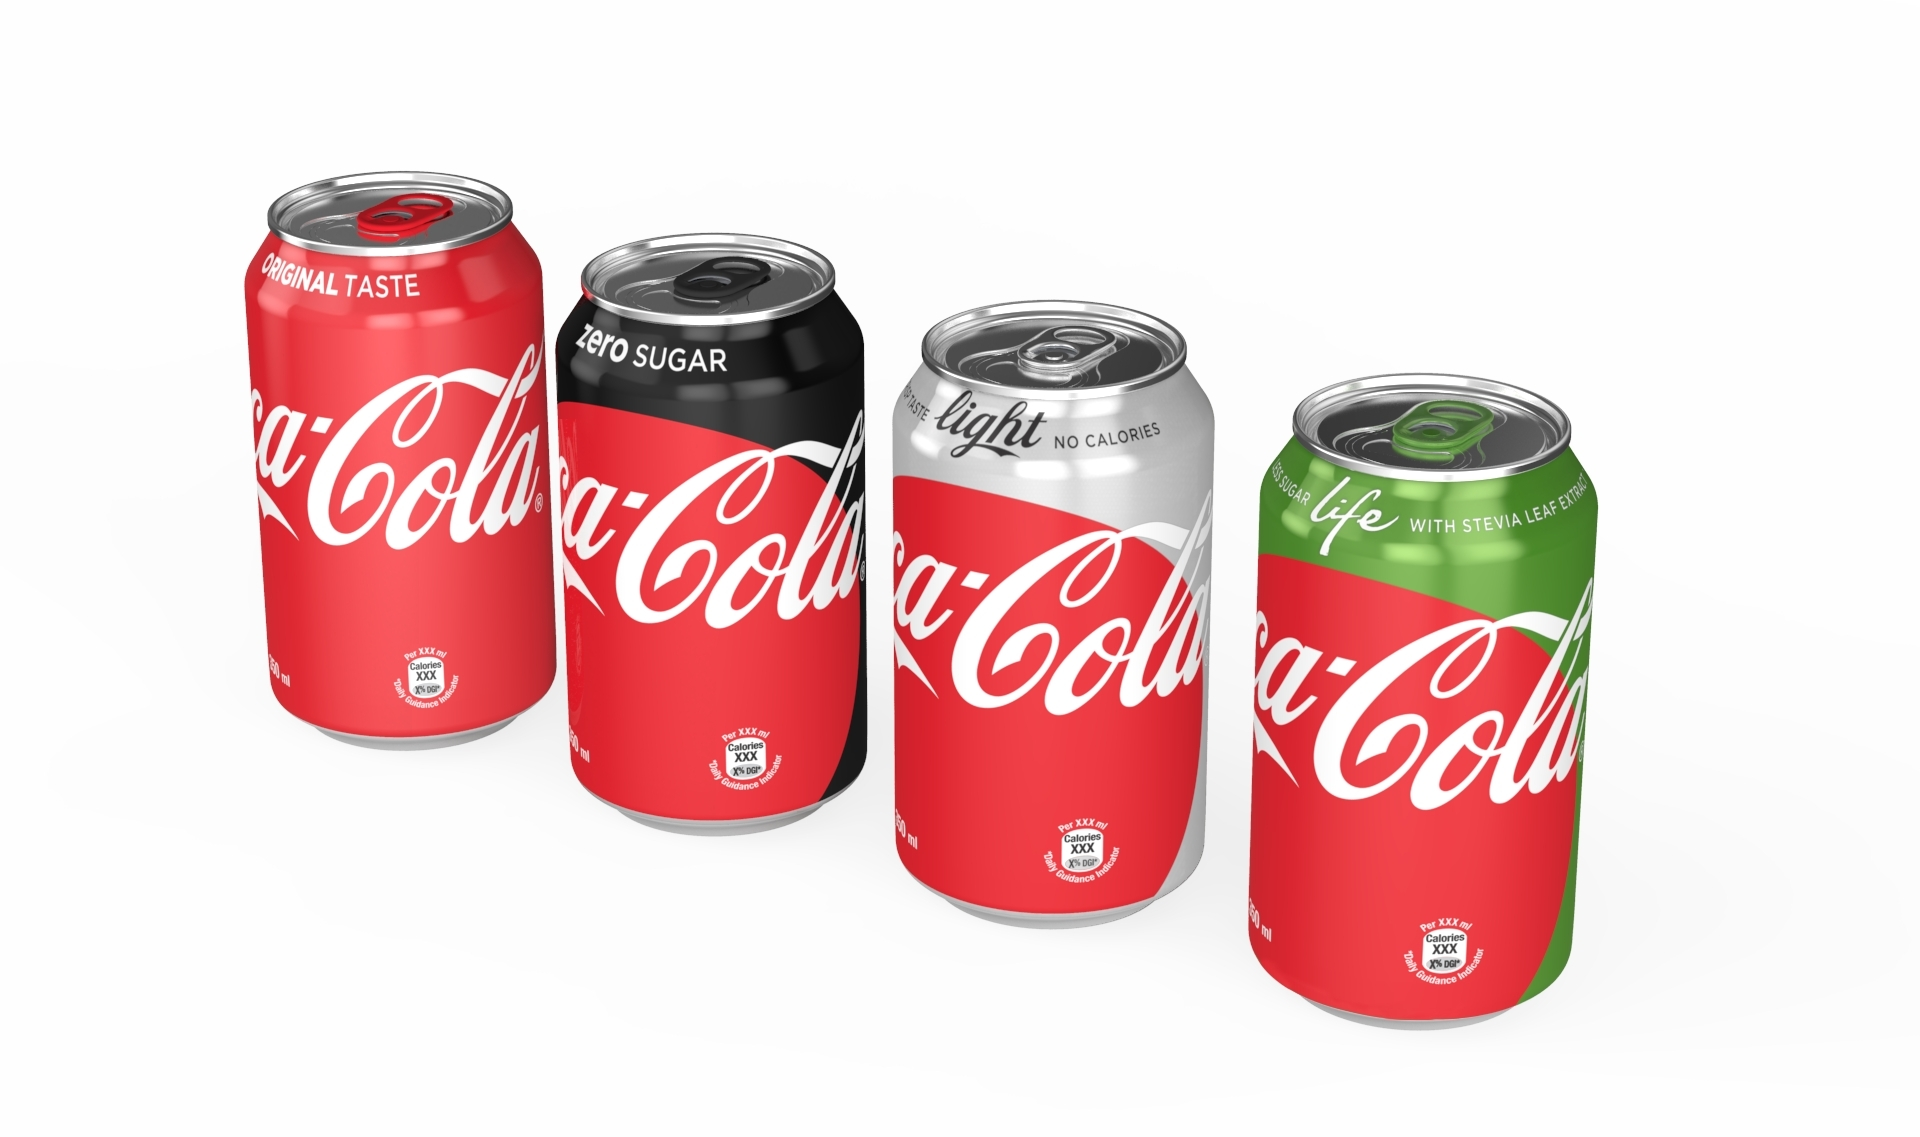 Coca-Cola is tinkering with its brand again